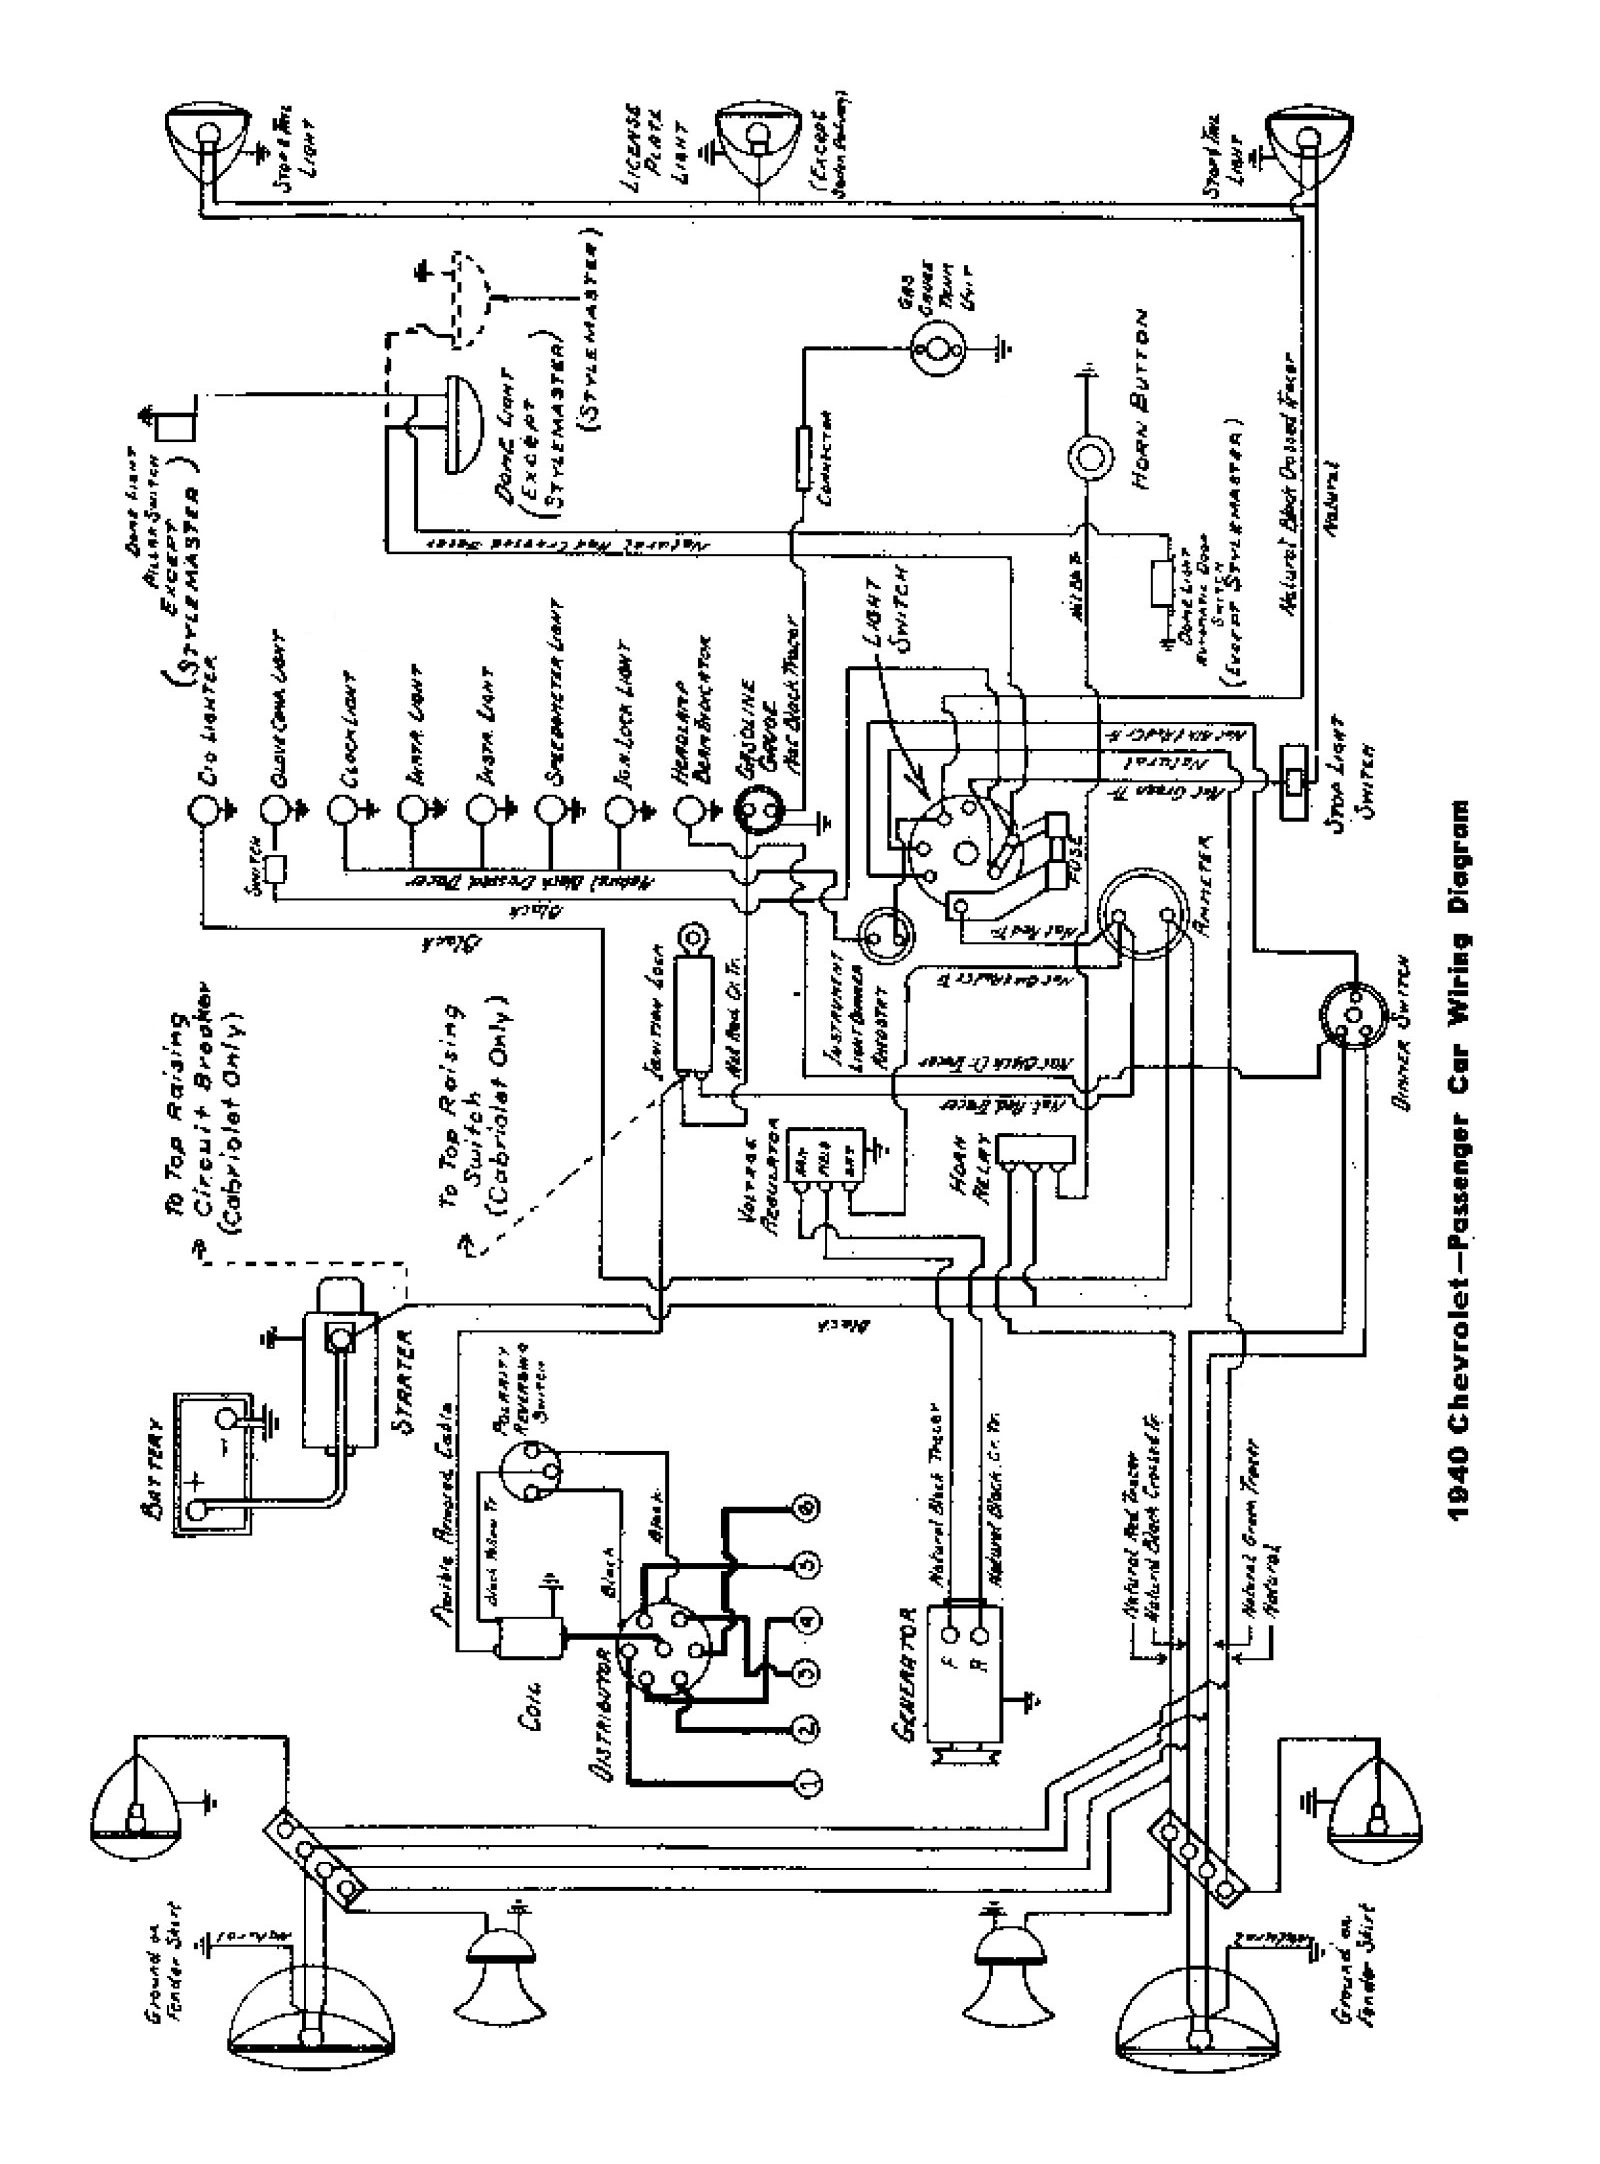 40car?resize=665%2C899 ford 3600 ignition switch wiring diagram the best wiring diagram ford 3600 tractor ignition switch wiring diagram at webbmarketing.co